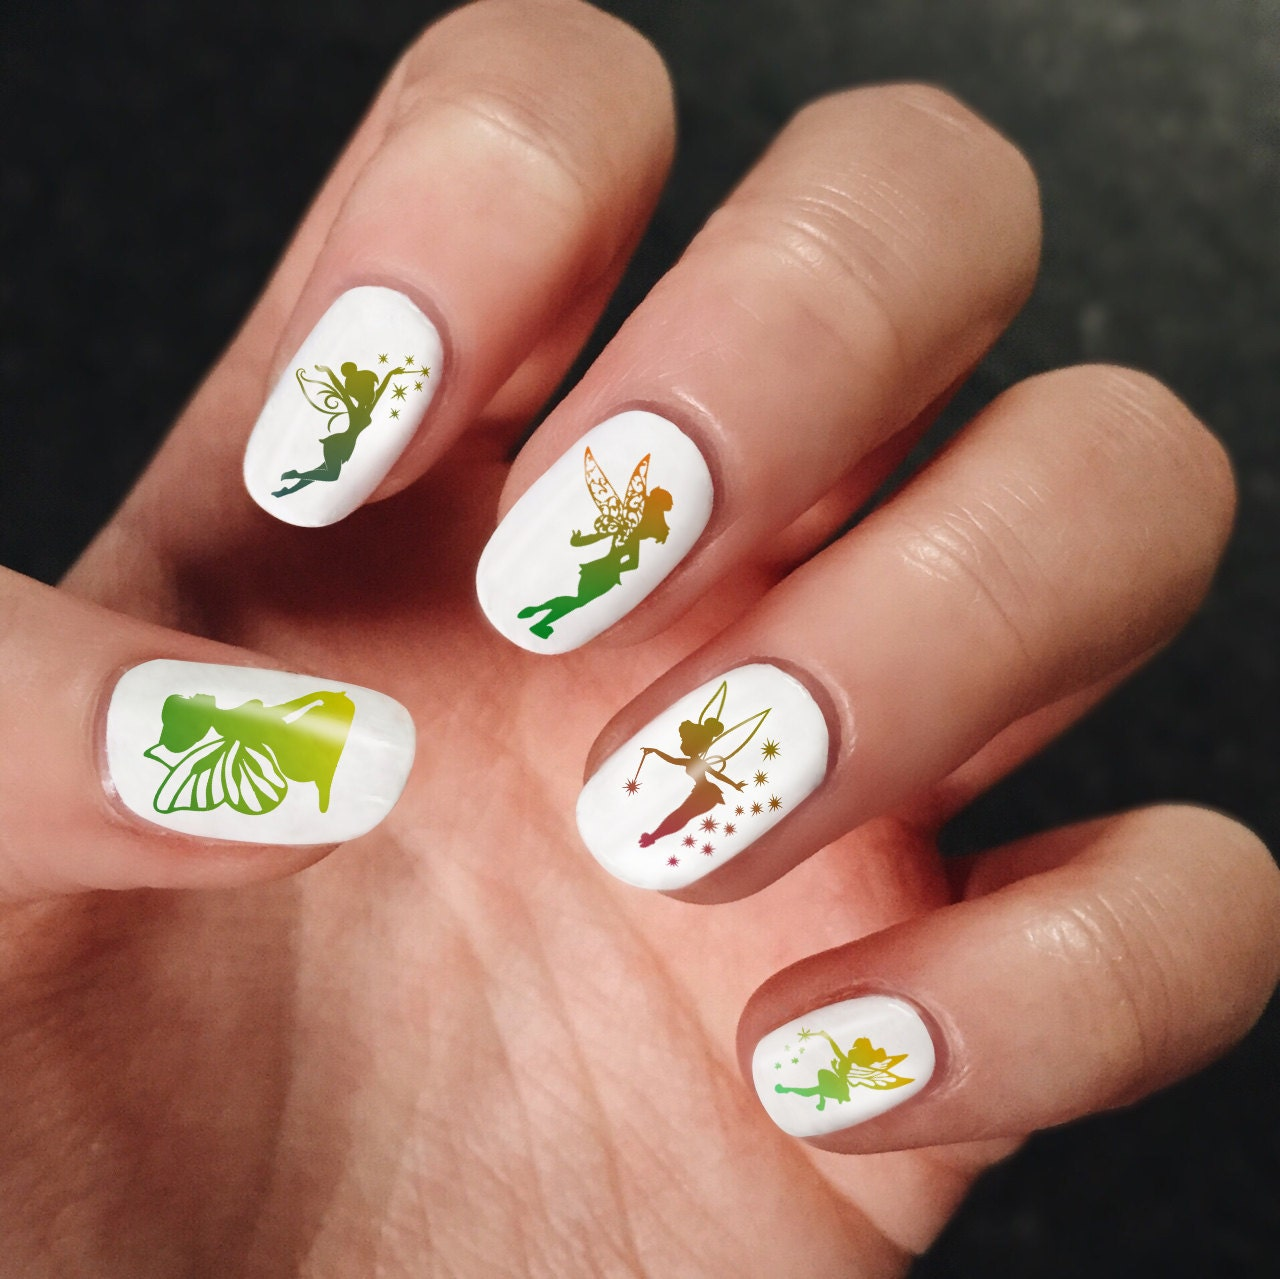 Tinkerbell Nails: Tinkerbell Art 300 Nails Decals Art Nail Polish Vinyl Stickers